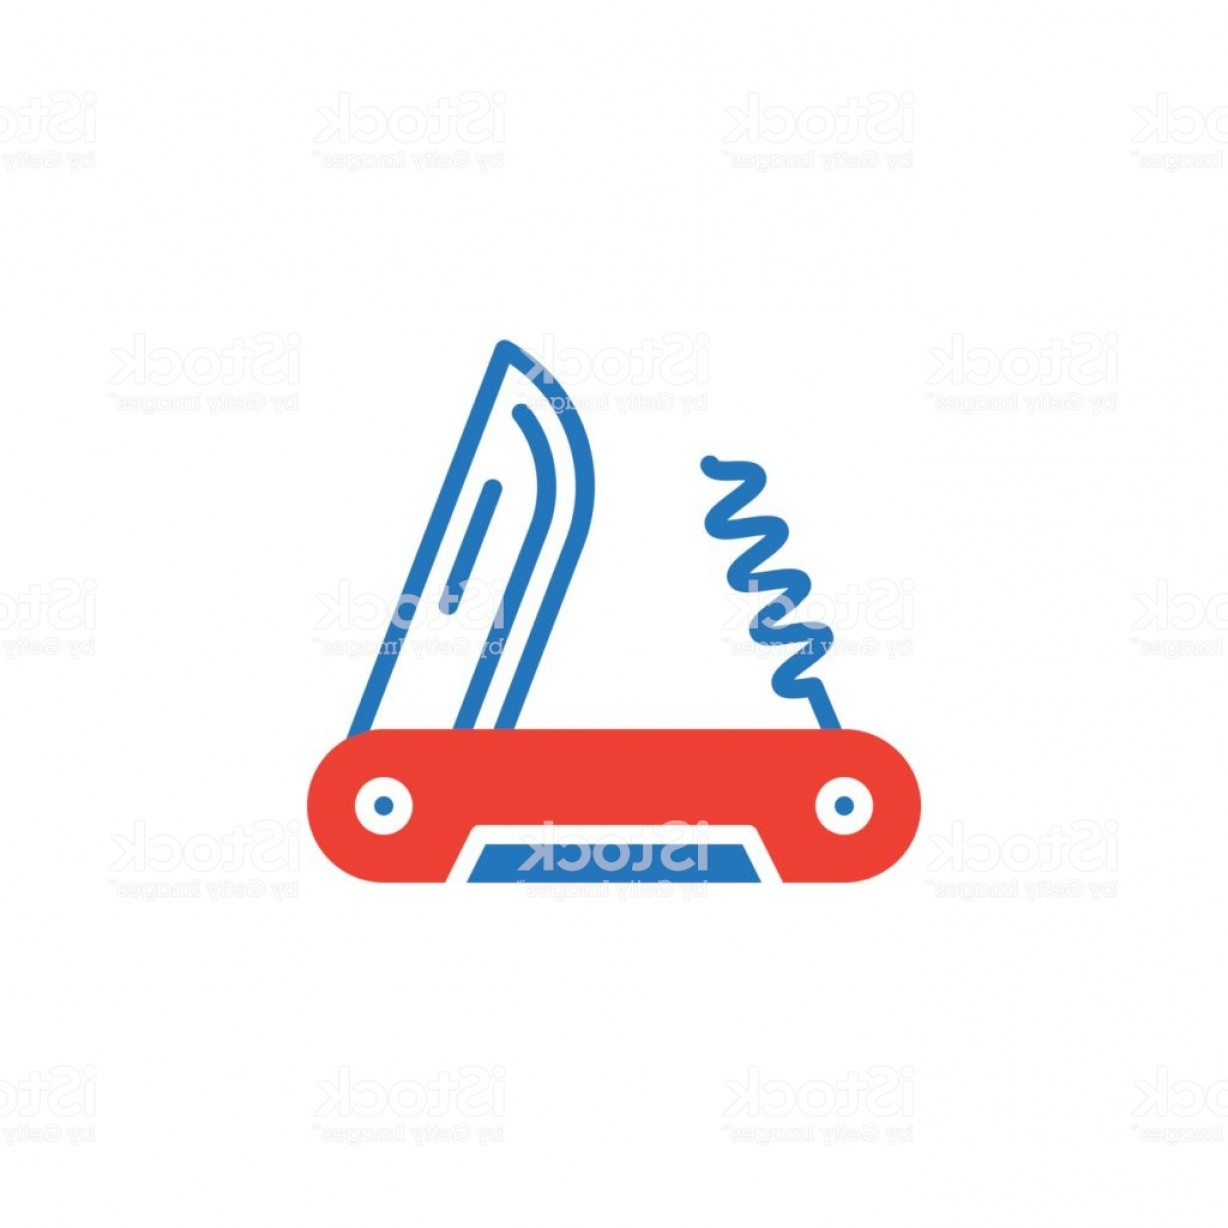 Vector Army Knife: Army Knife Icon Vector Filled Flat Sign Solid Colorful Pictogram Isolated On White Gm